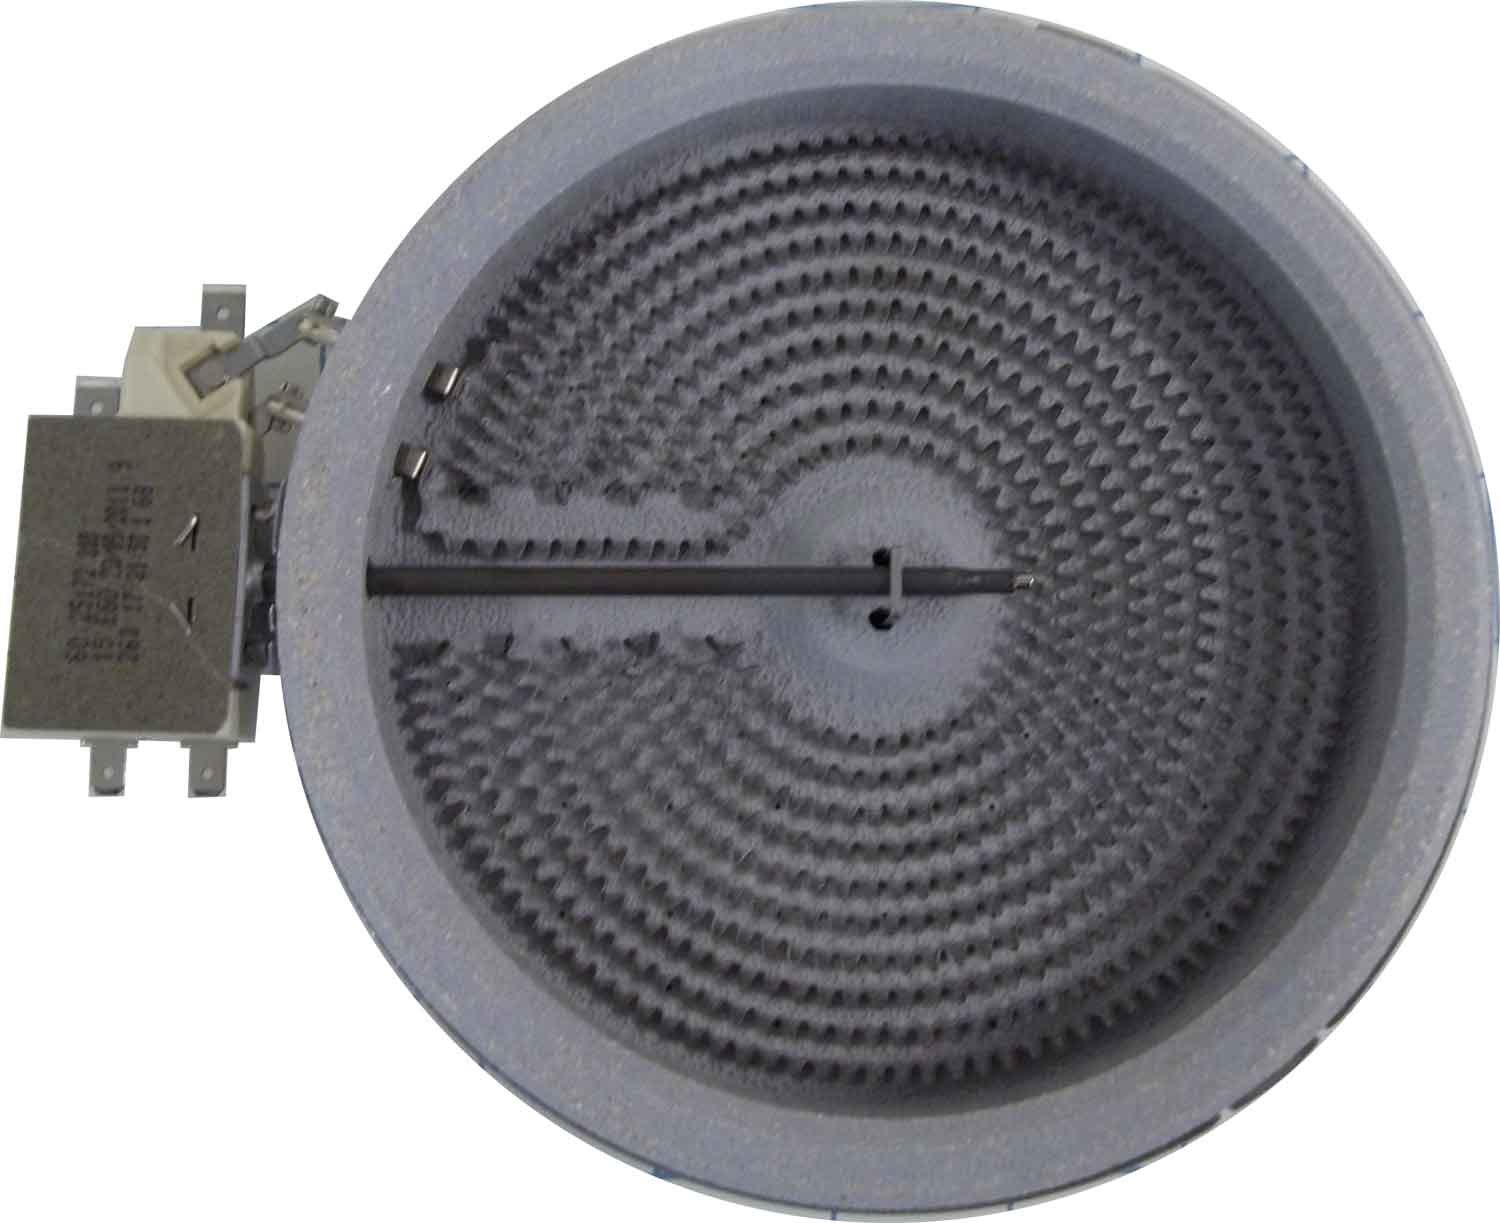 Amazon.com: Whirlpool 8273994 Surface Element for Range: Home ...